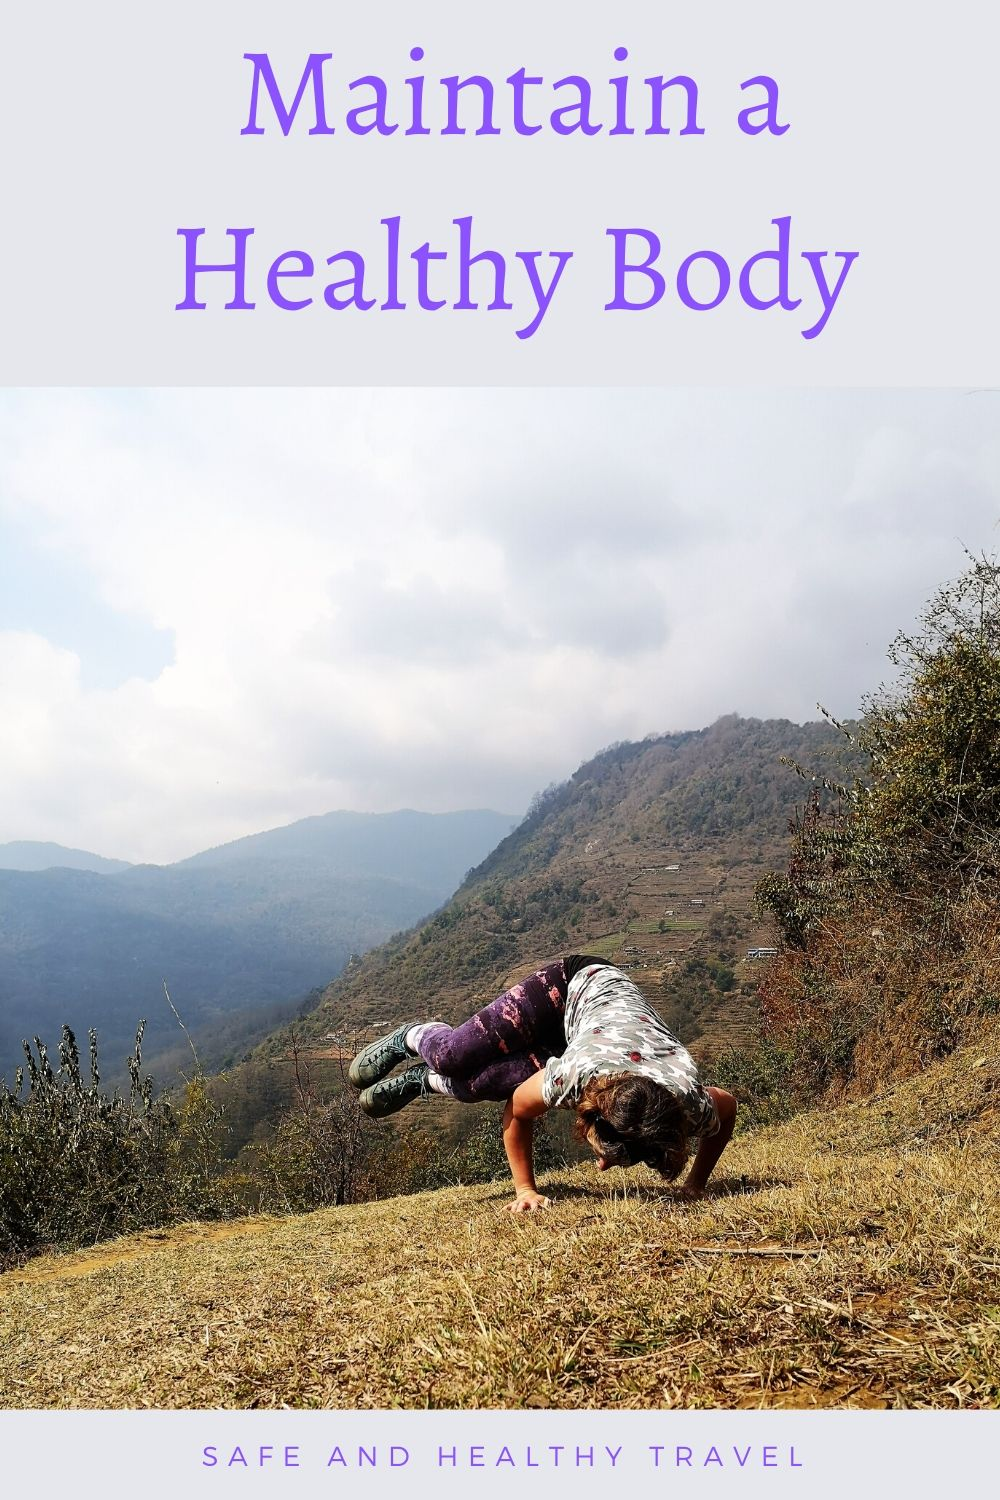 What can you do to Maintain a Healthy Body